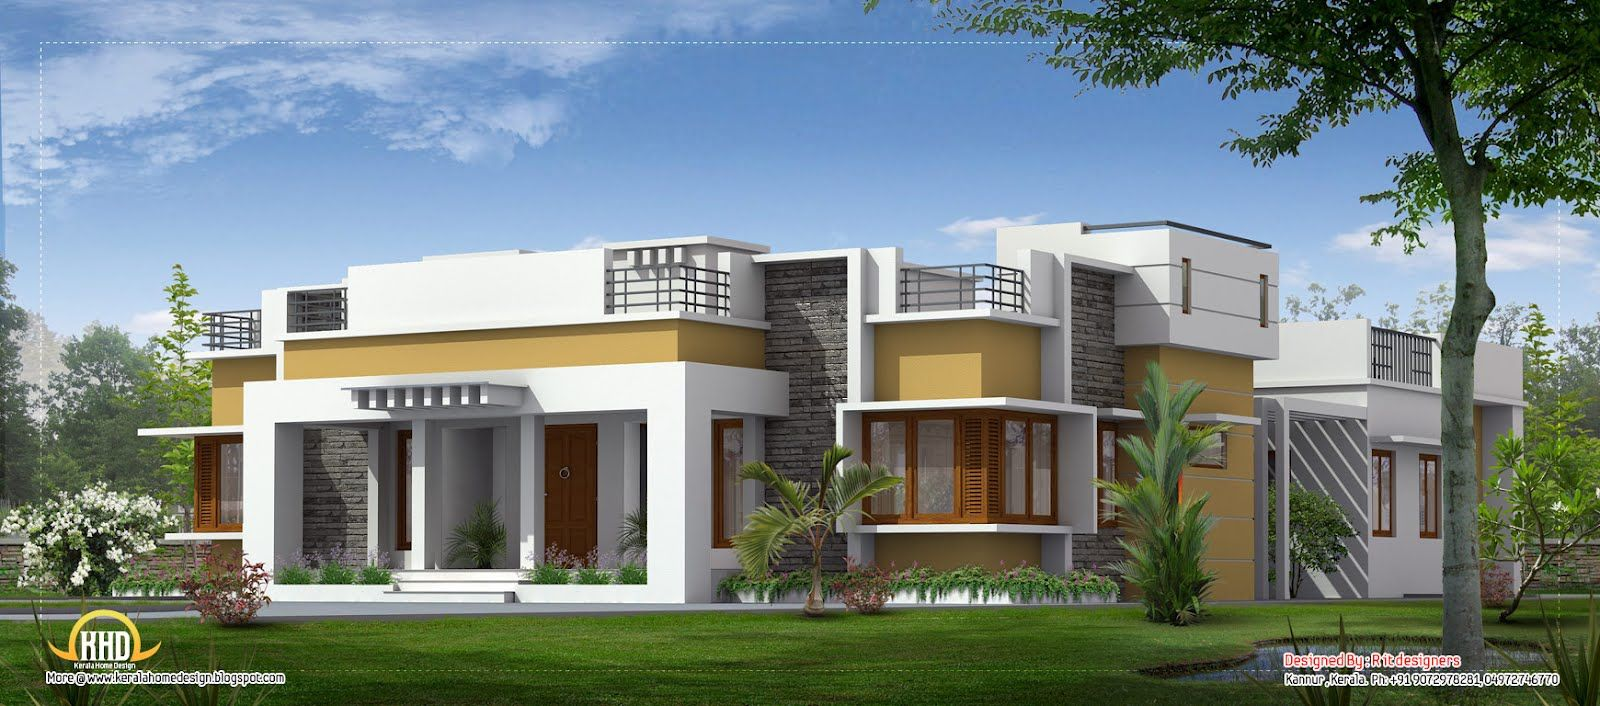 Single level designer home single floor house plans for Single floor house elevation designs